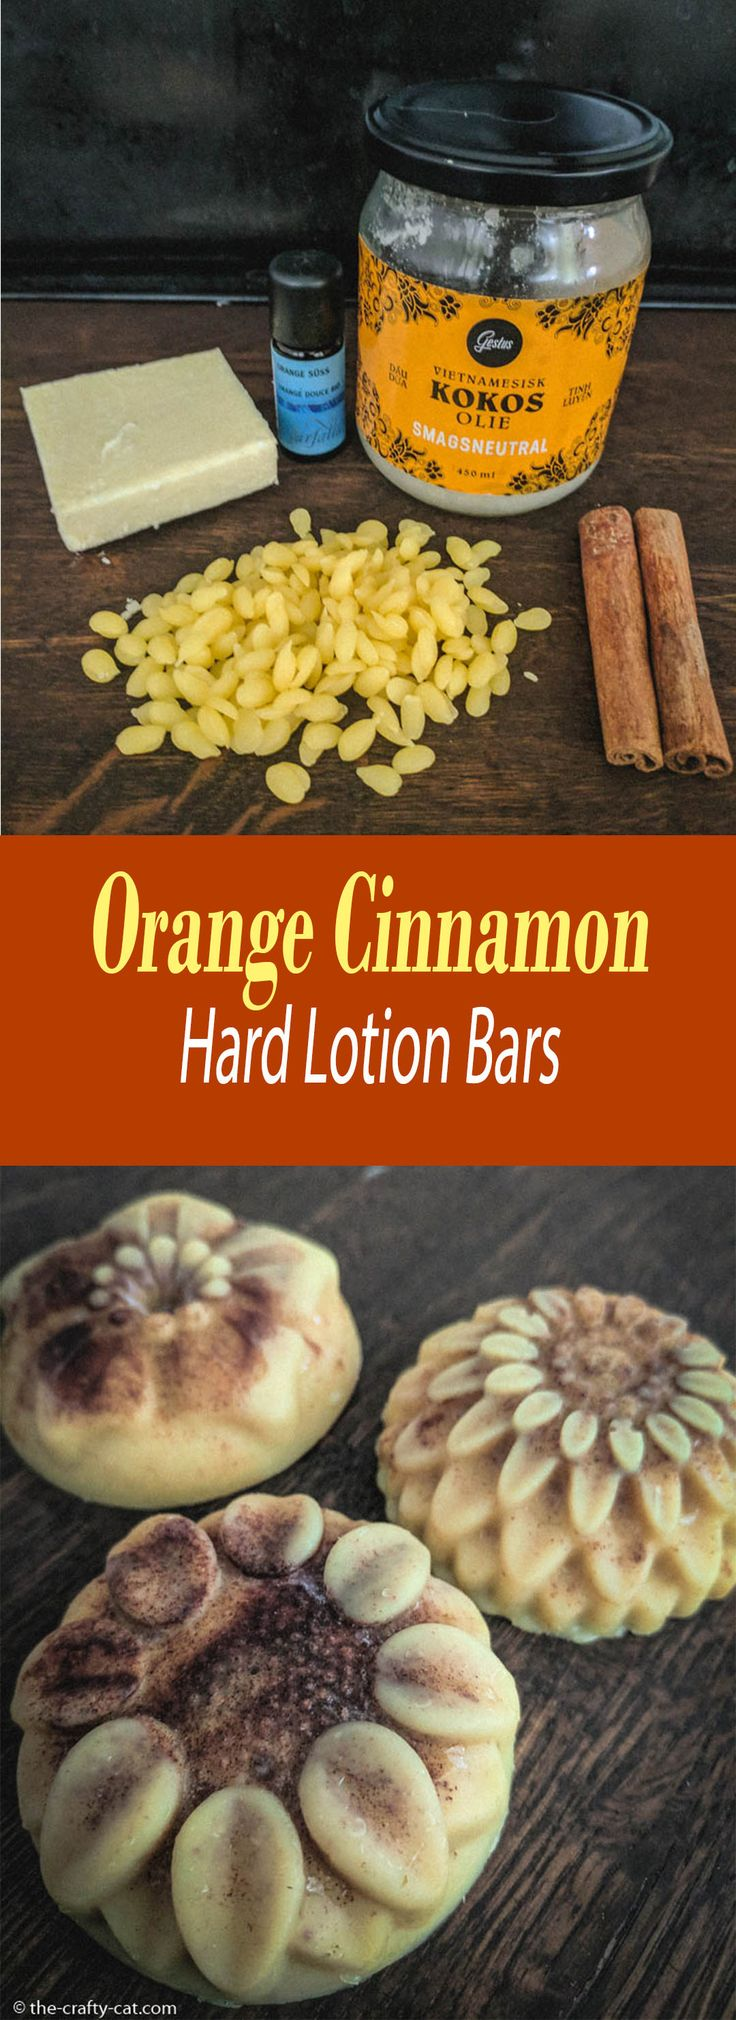 Hard Lotion Bars with Sweet Orange Oil and Cinnamon. All natural. Preservative free. Suitable for sensitive skin. #lotionbars #cinnamon #natural #skincare #sensitiveskin